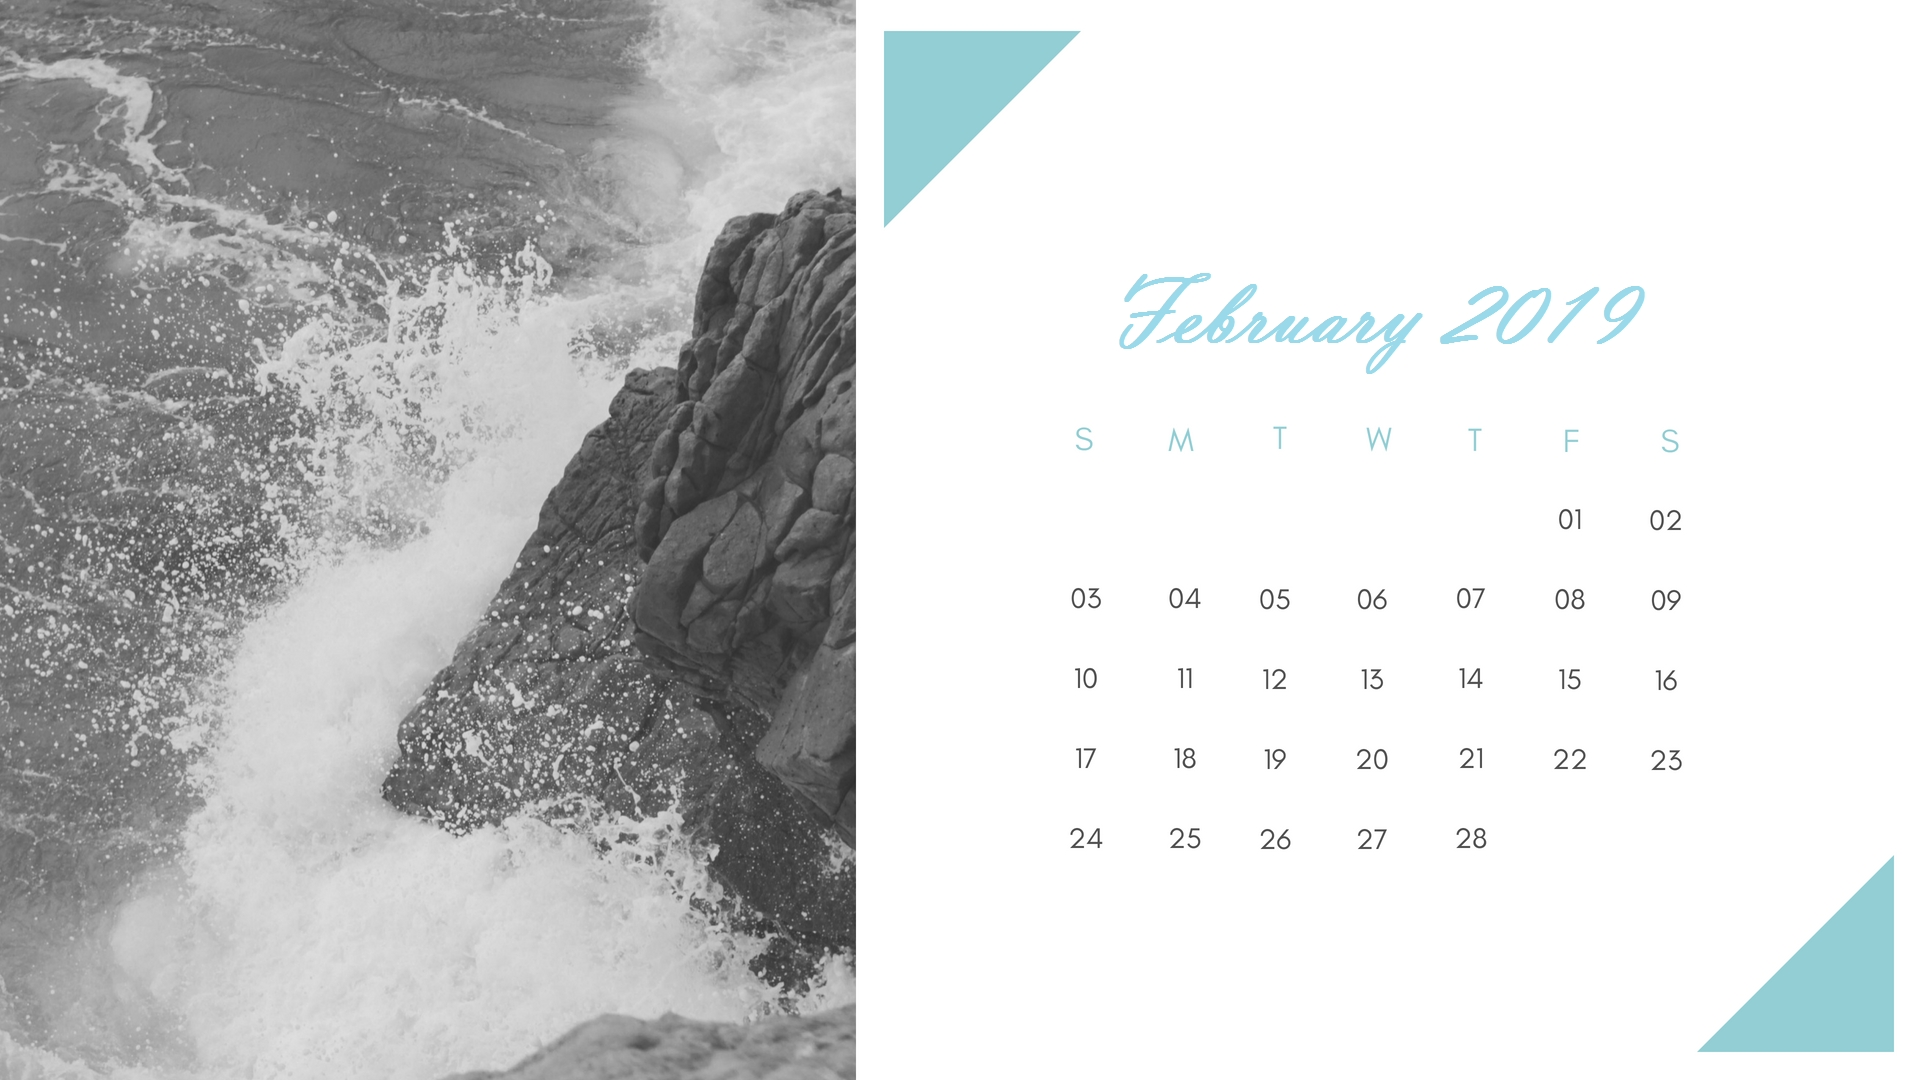 February 2019 Nature Beauty Calendar Templates | Monthly Calendar in Calendar Prints Related To Beauty Of Water